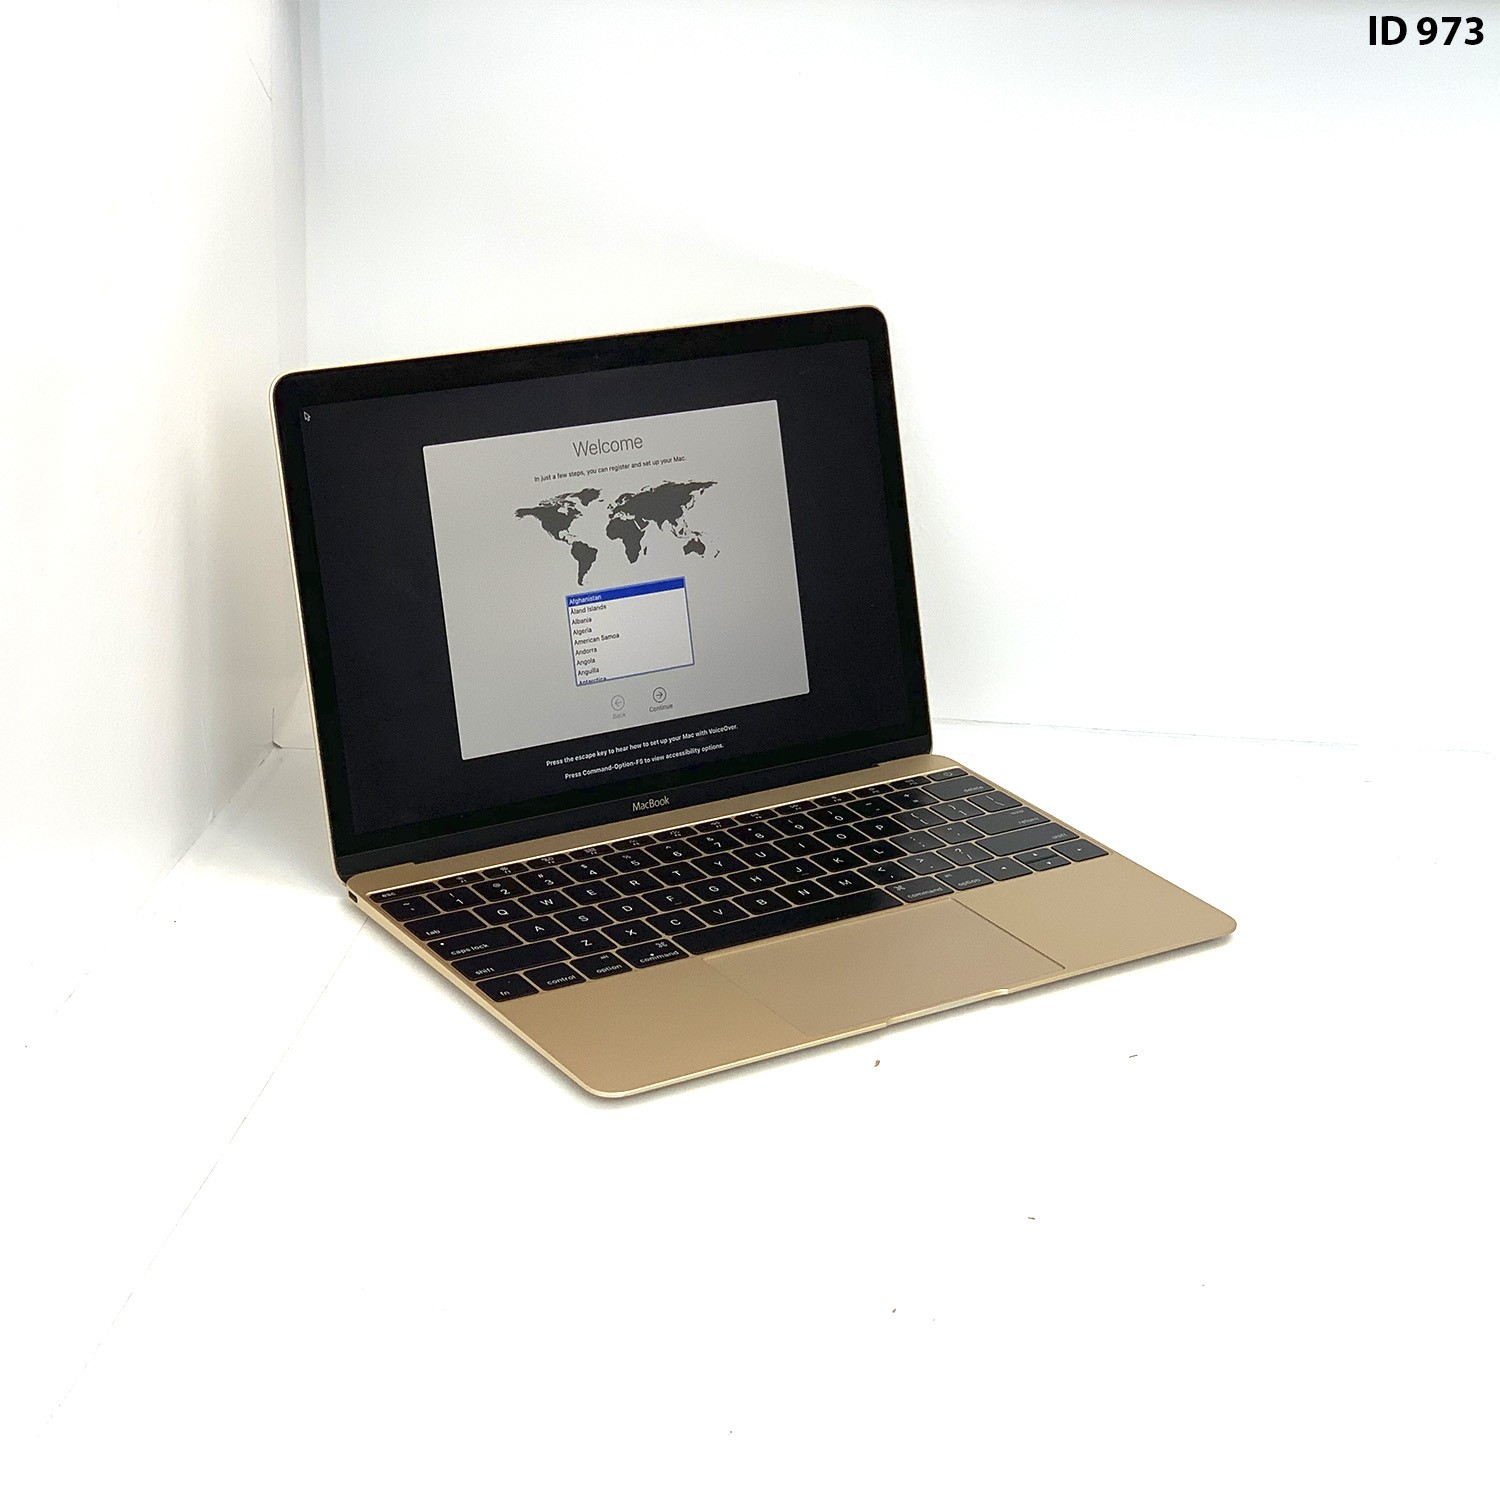 Macbook 12 Gold M 1.1Ghz 8GB 256GB SSD MF855LL/A Seminovo